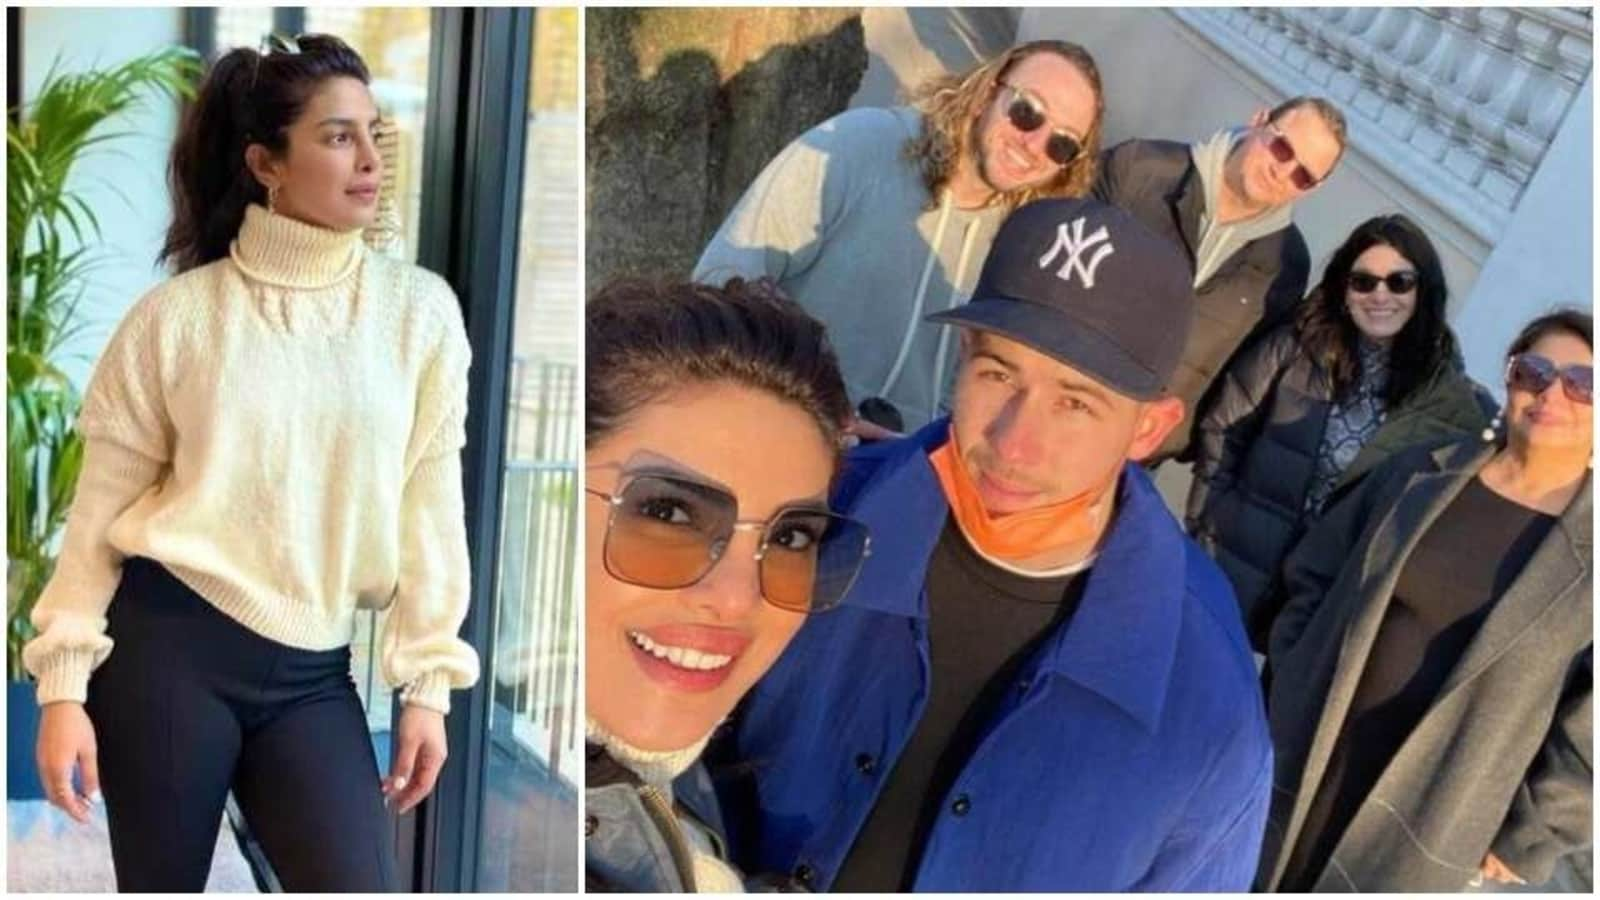 Priyanka Chopra is reunited with Nick Jonas, her in-laws in London; wears sweater knitted by her mom - Hindustan Times